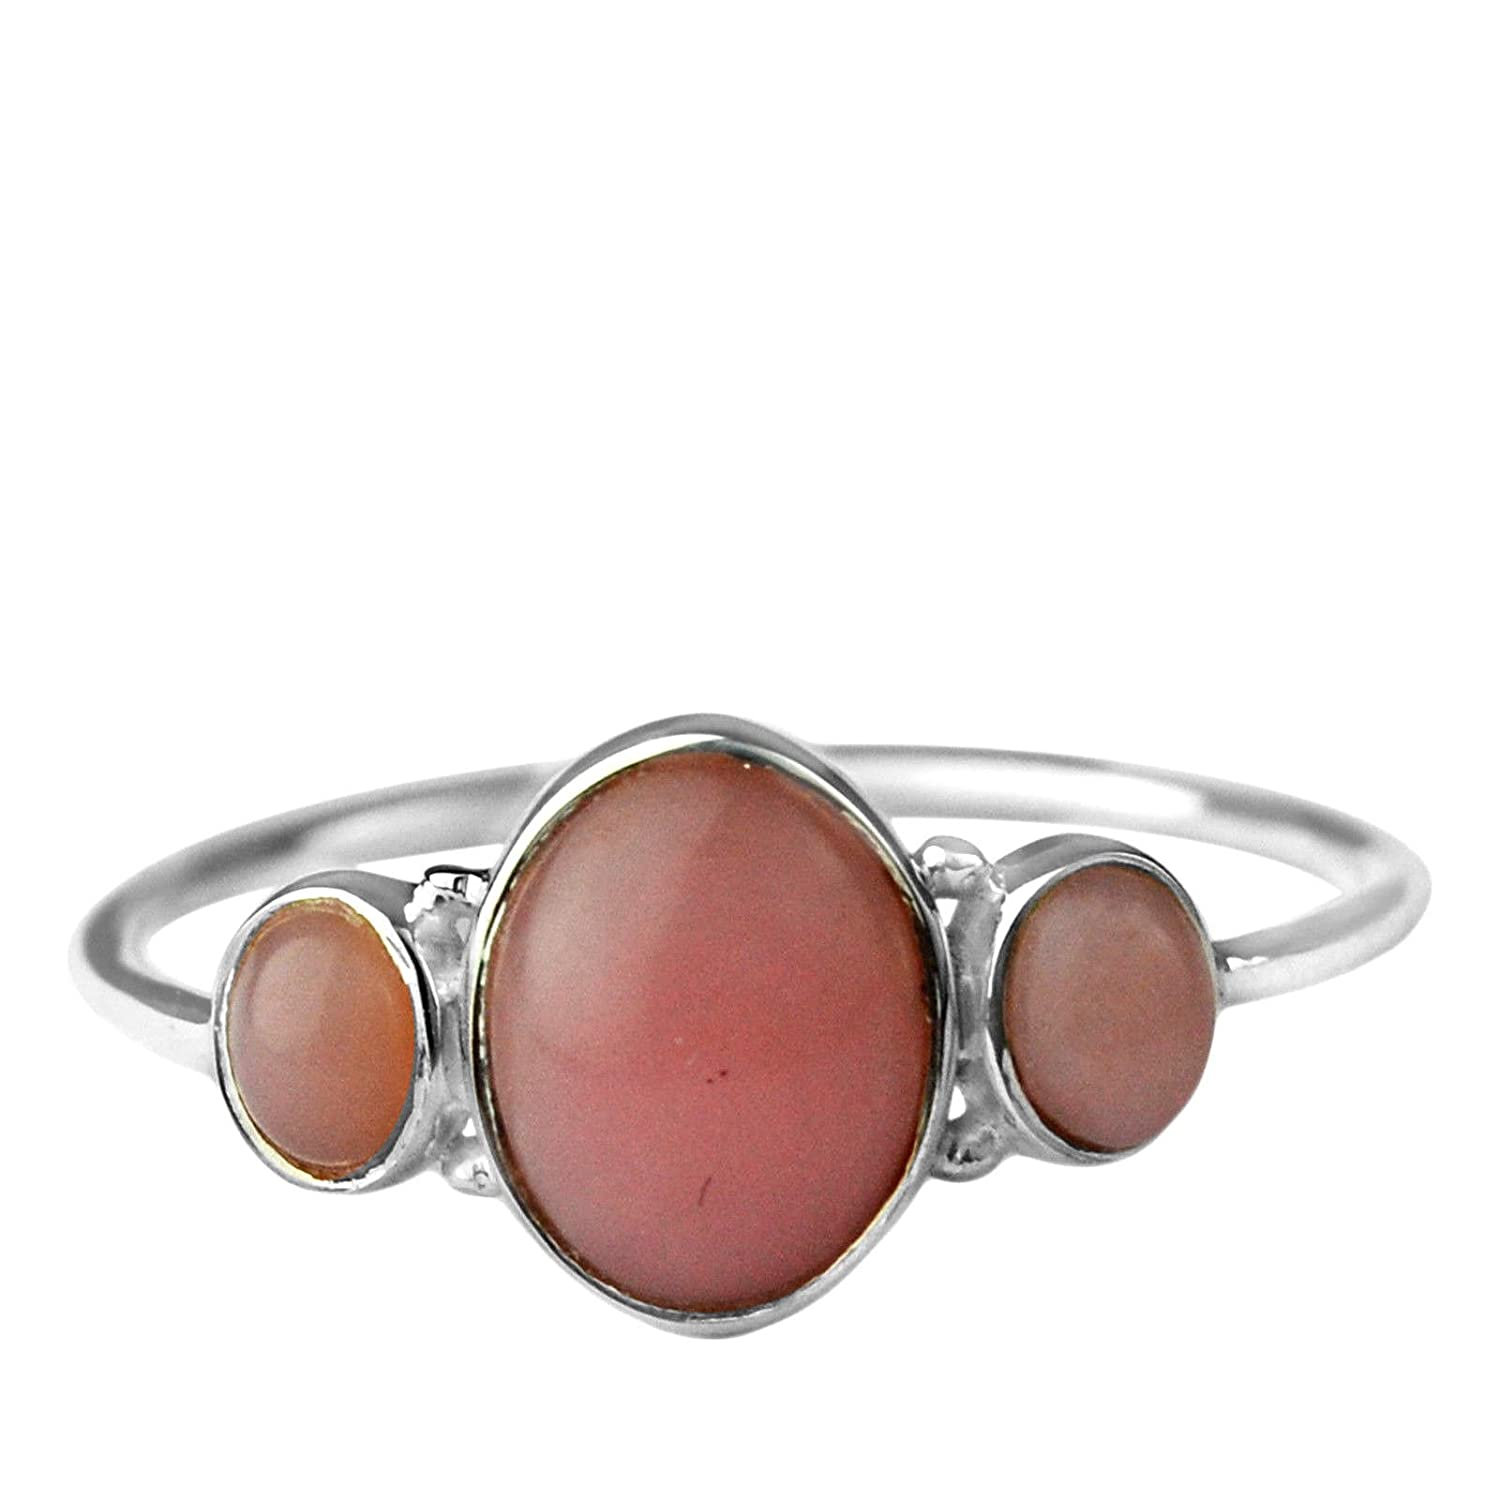 Crystalcraftindia Pink opal 925 Sterling silver lightweight ring size 7 US 1.16 g teenager jewelry